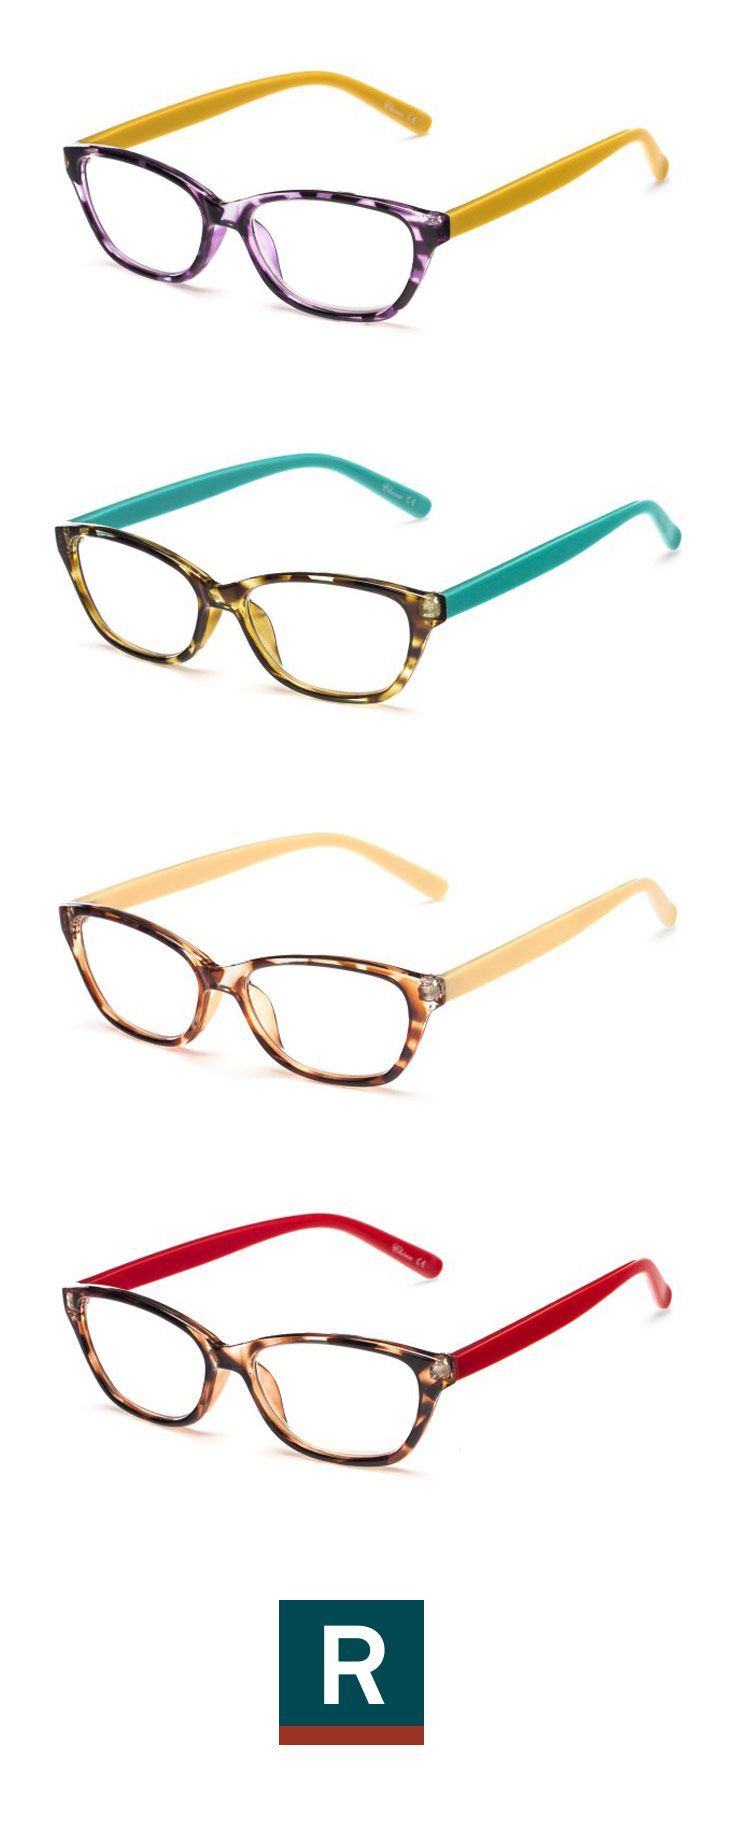 The Catherine reader has a tortoise front and contrasting, solid color temples for a trendsetting look. If you have a love for pattern-mixing or wearing bright colors like Catherine of Not Dressed As Lamb, they're a must-have! She hand selected them for our Influencer Collection.